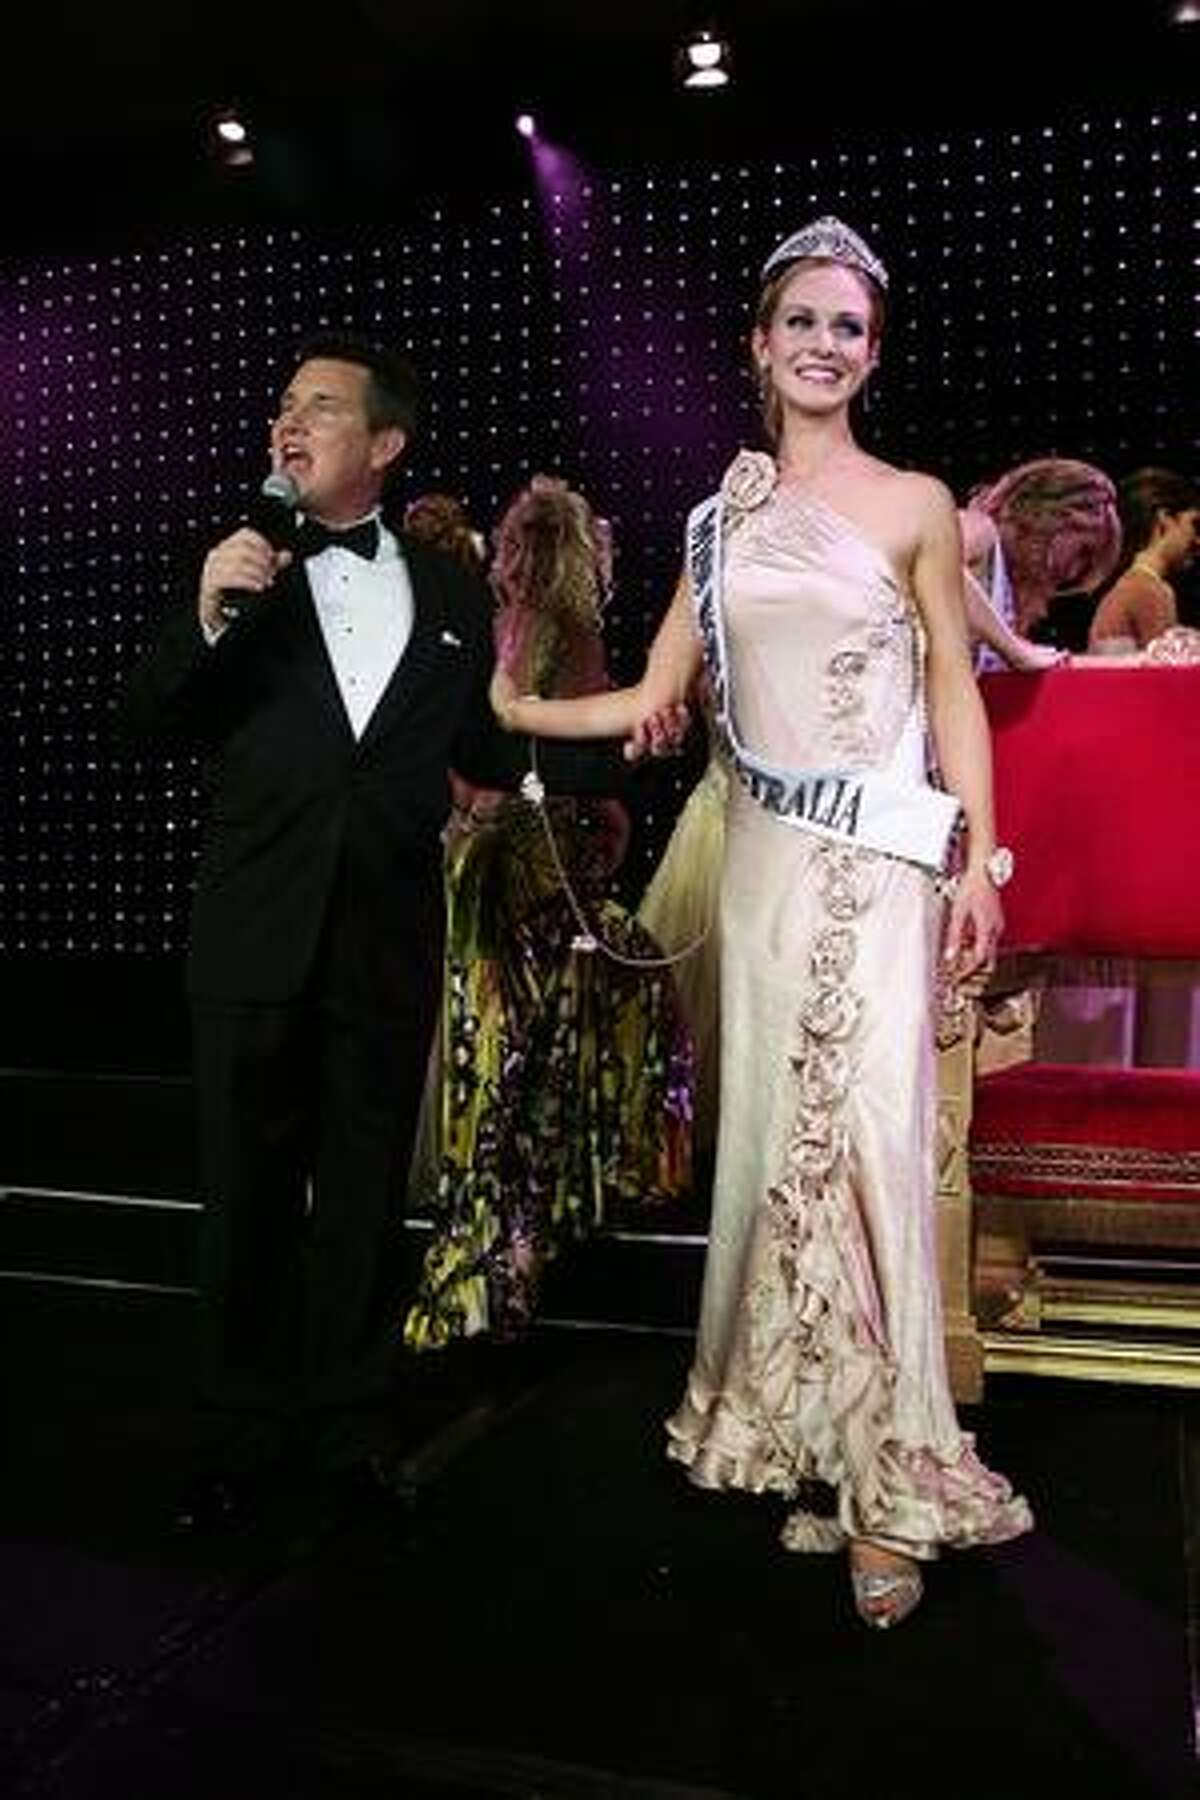 Sophie Laver is crowned Miss World Australia 2009 at the ceremony at Star City in Sydney, Australia.